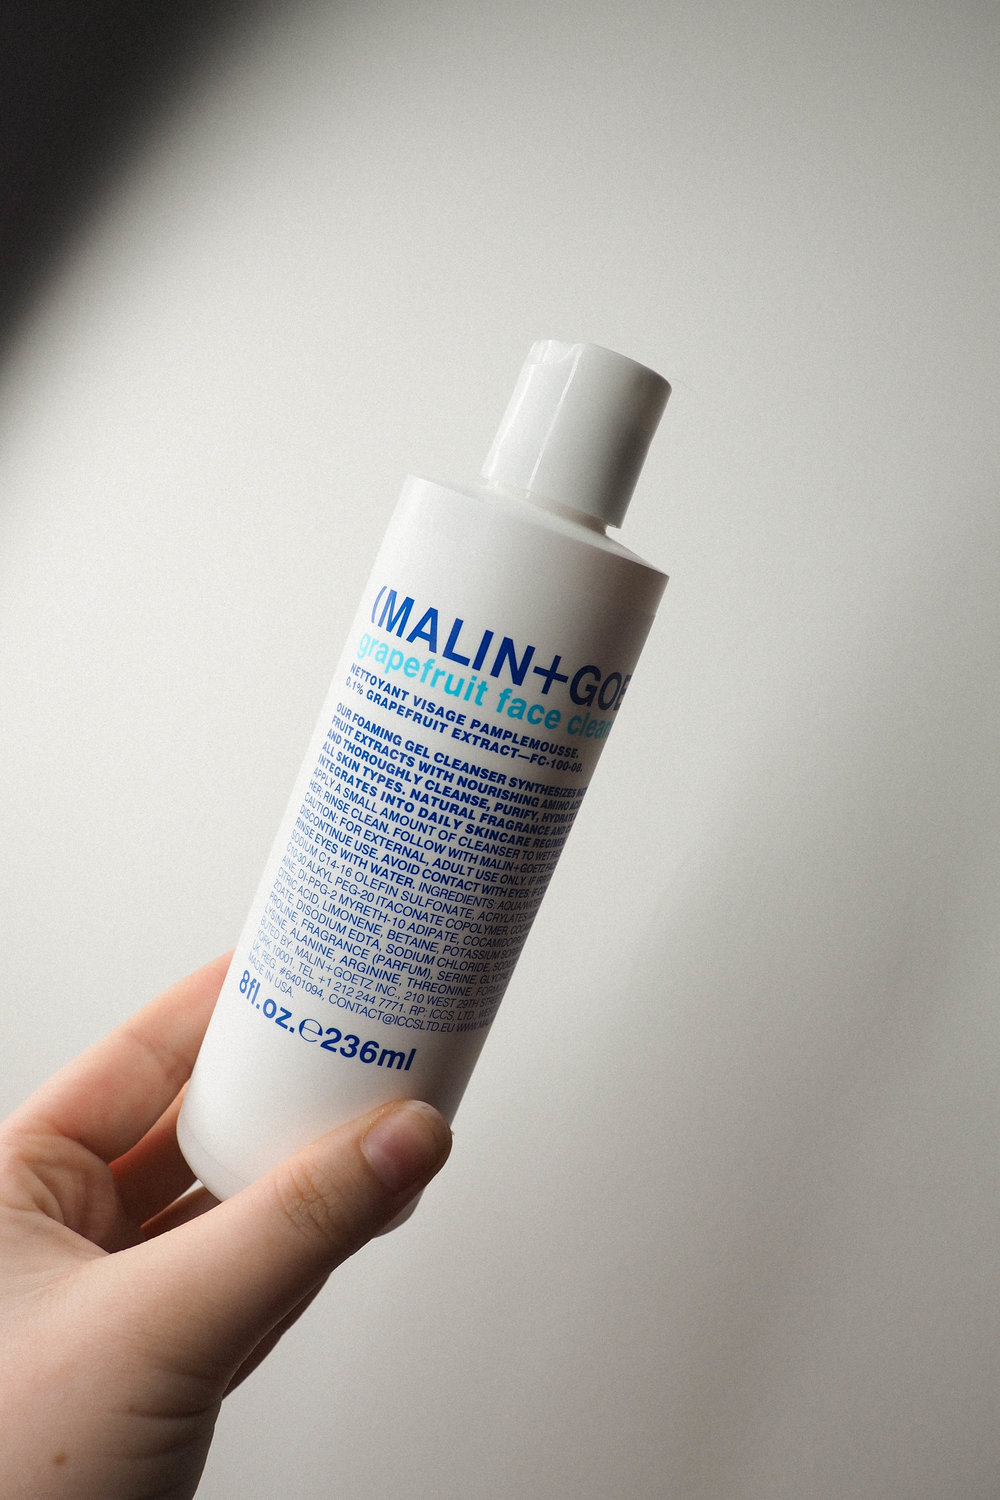 Malin and Goetz cleanser